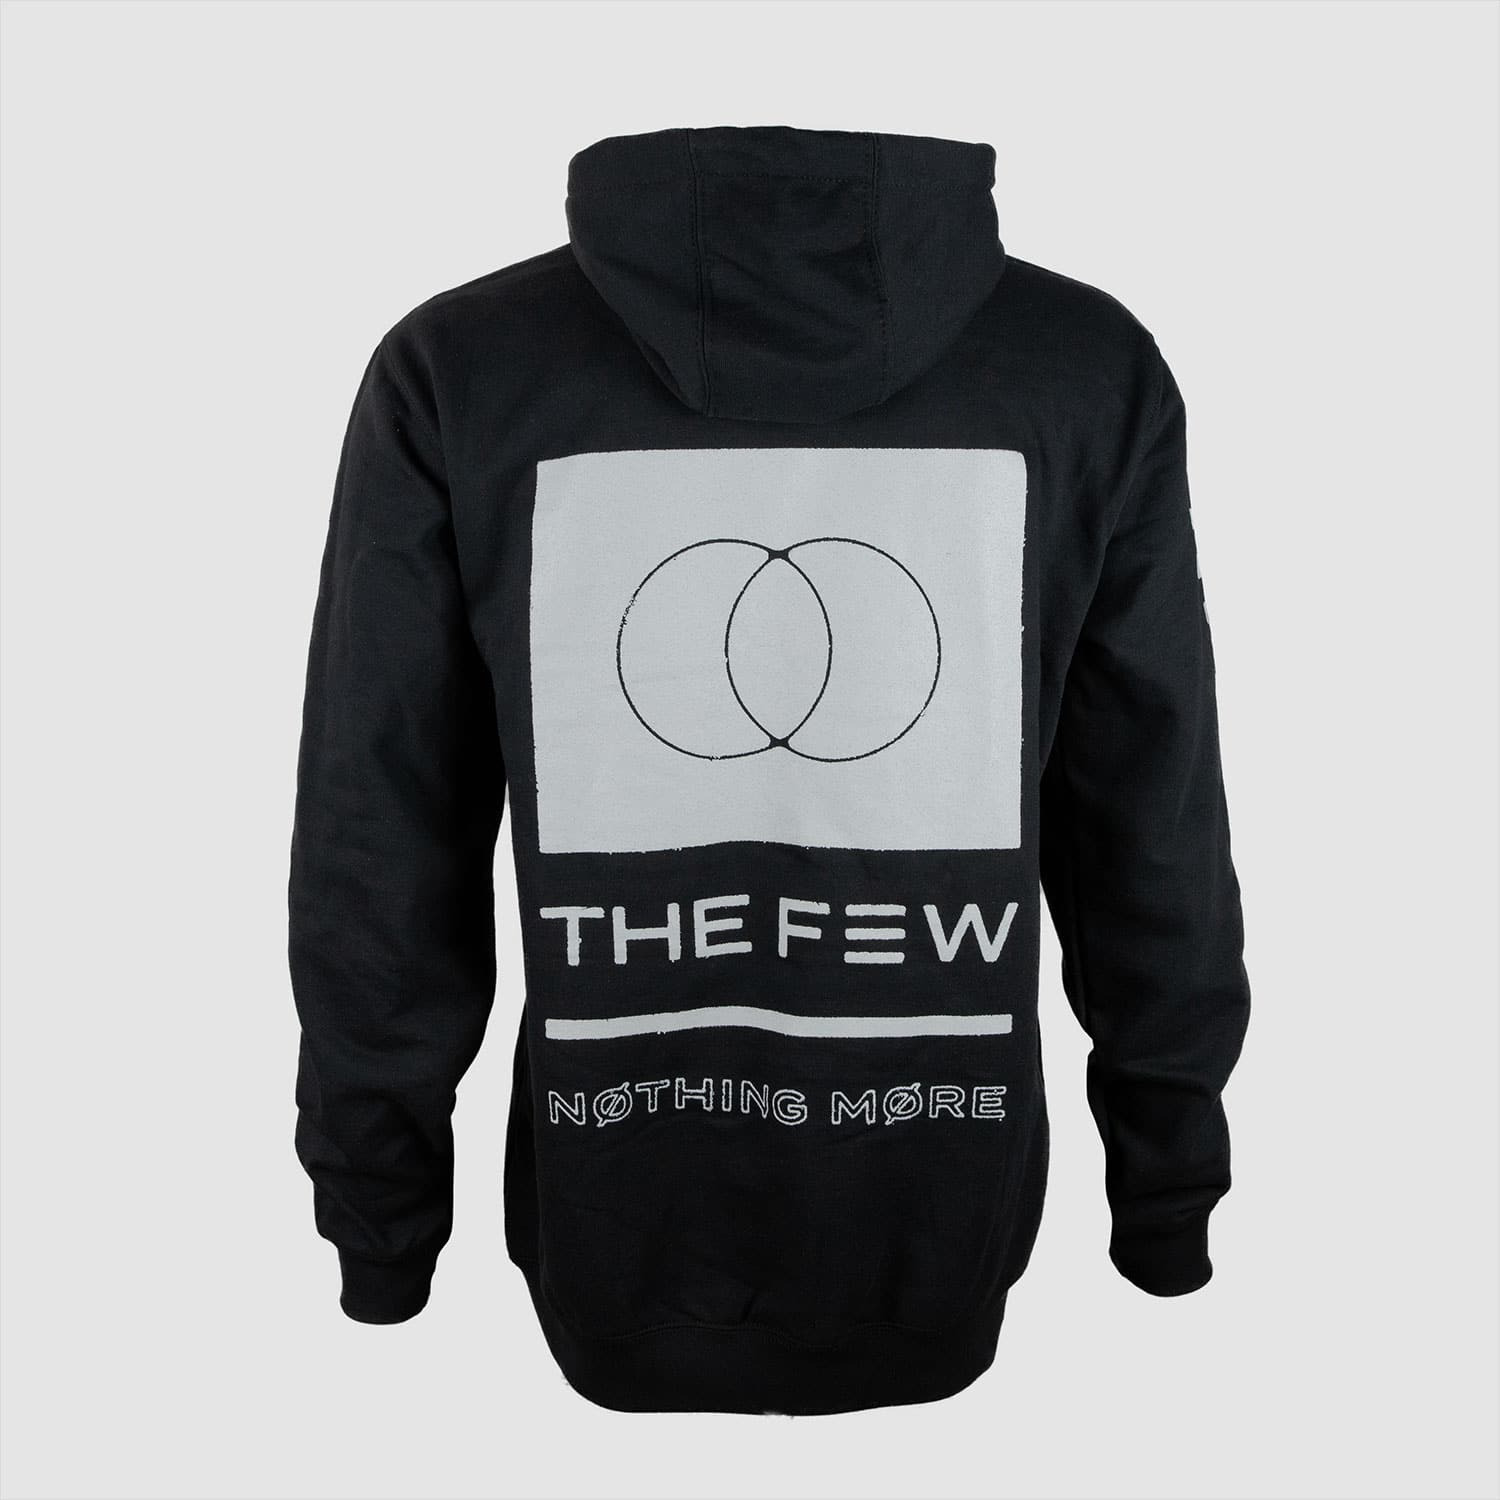 THE FEW CHAMPION LOGO HOODIE